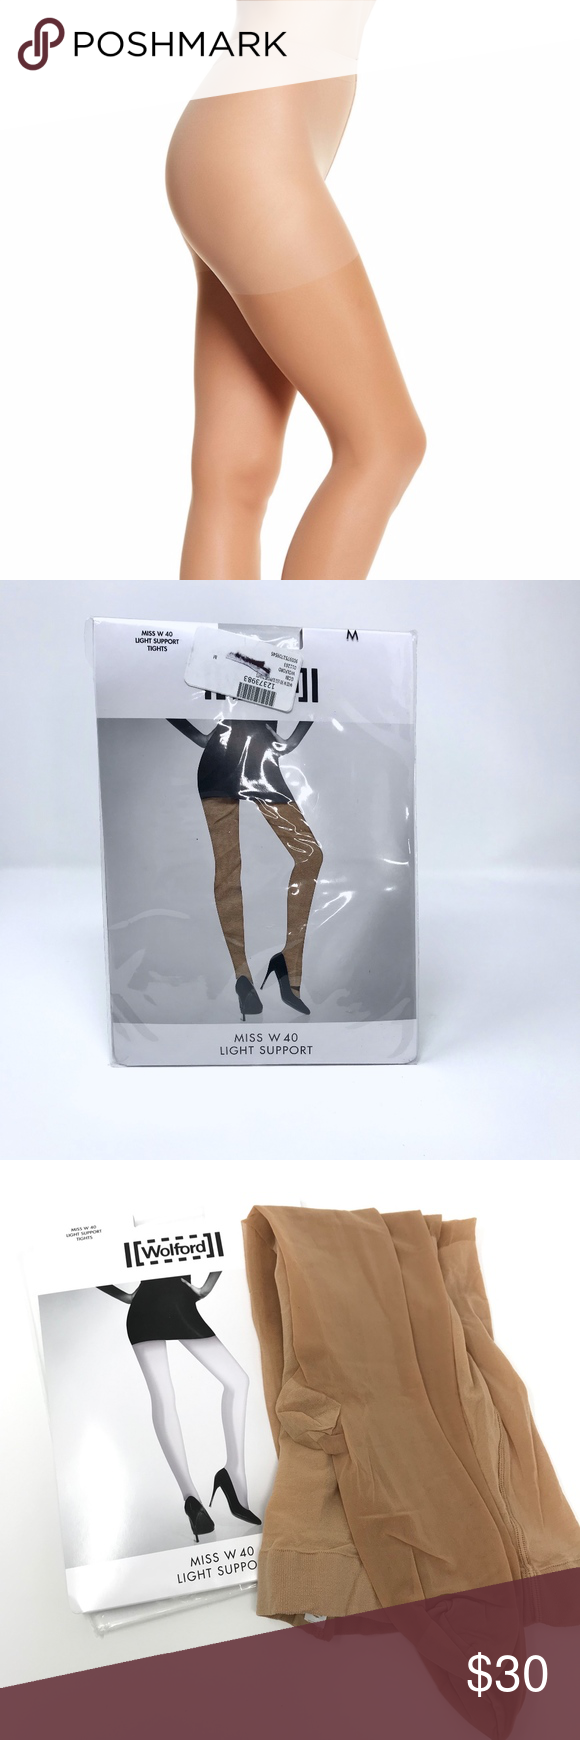 NWT Wolford MISS W 40 LIGHT SUPPORT Tights GOBI